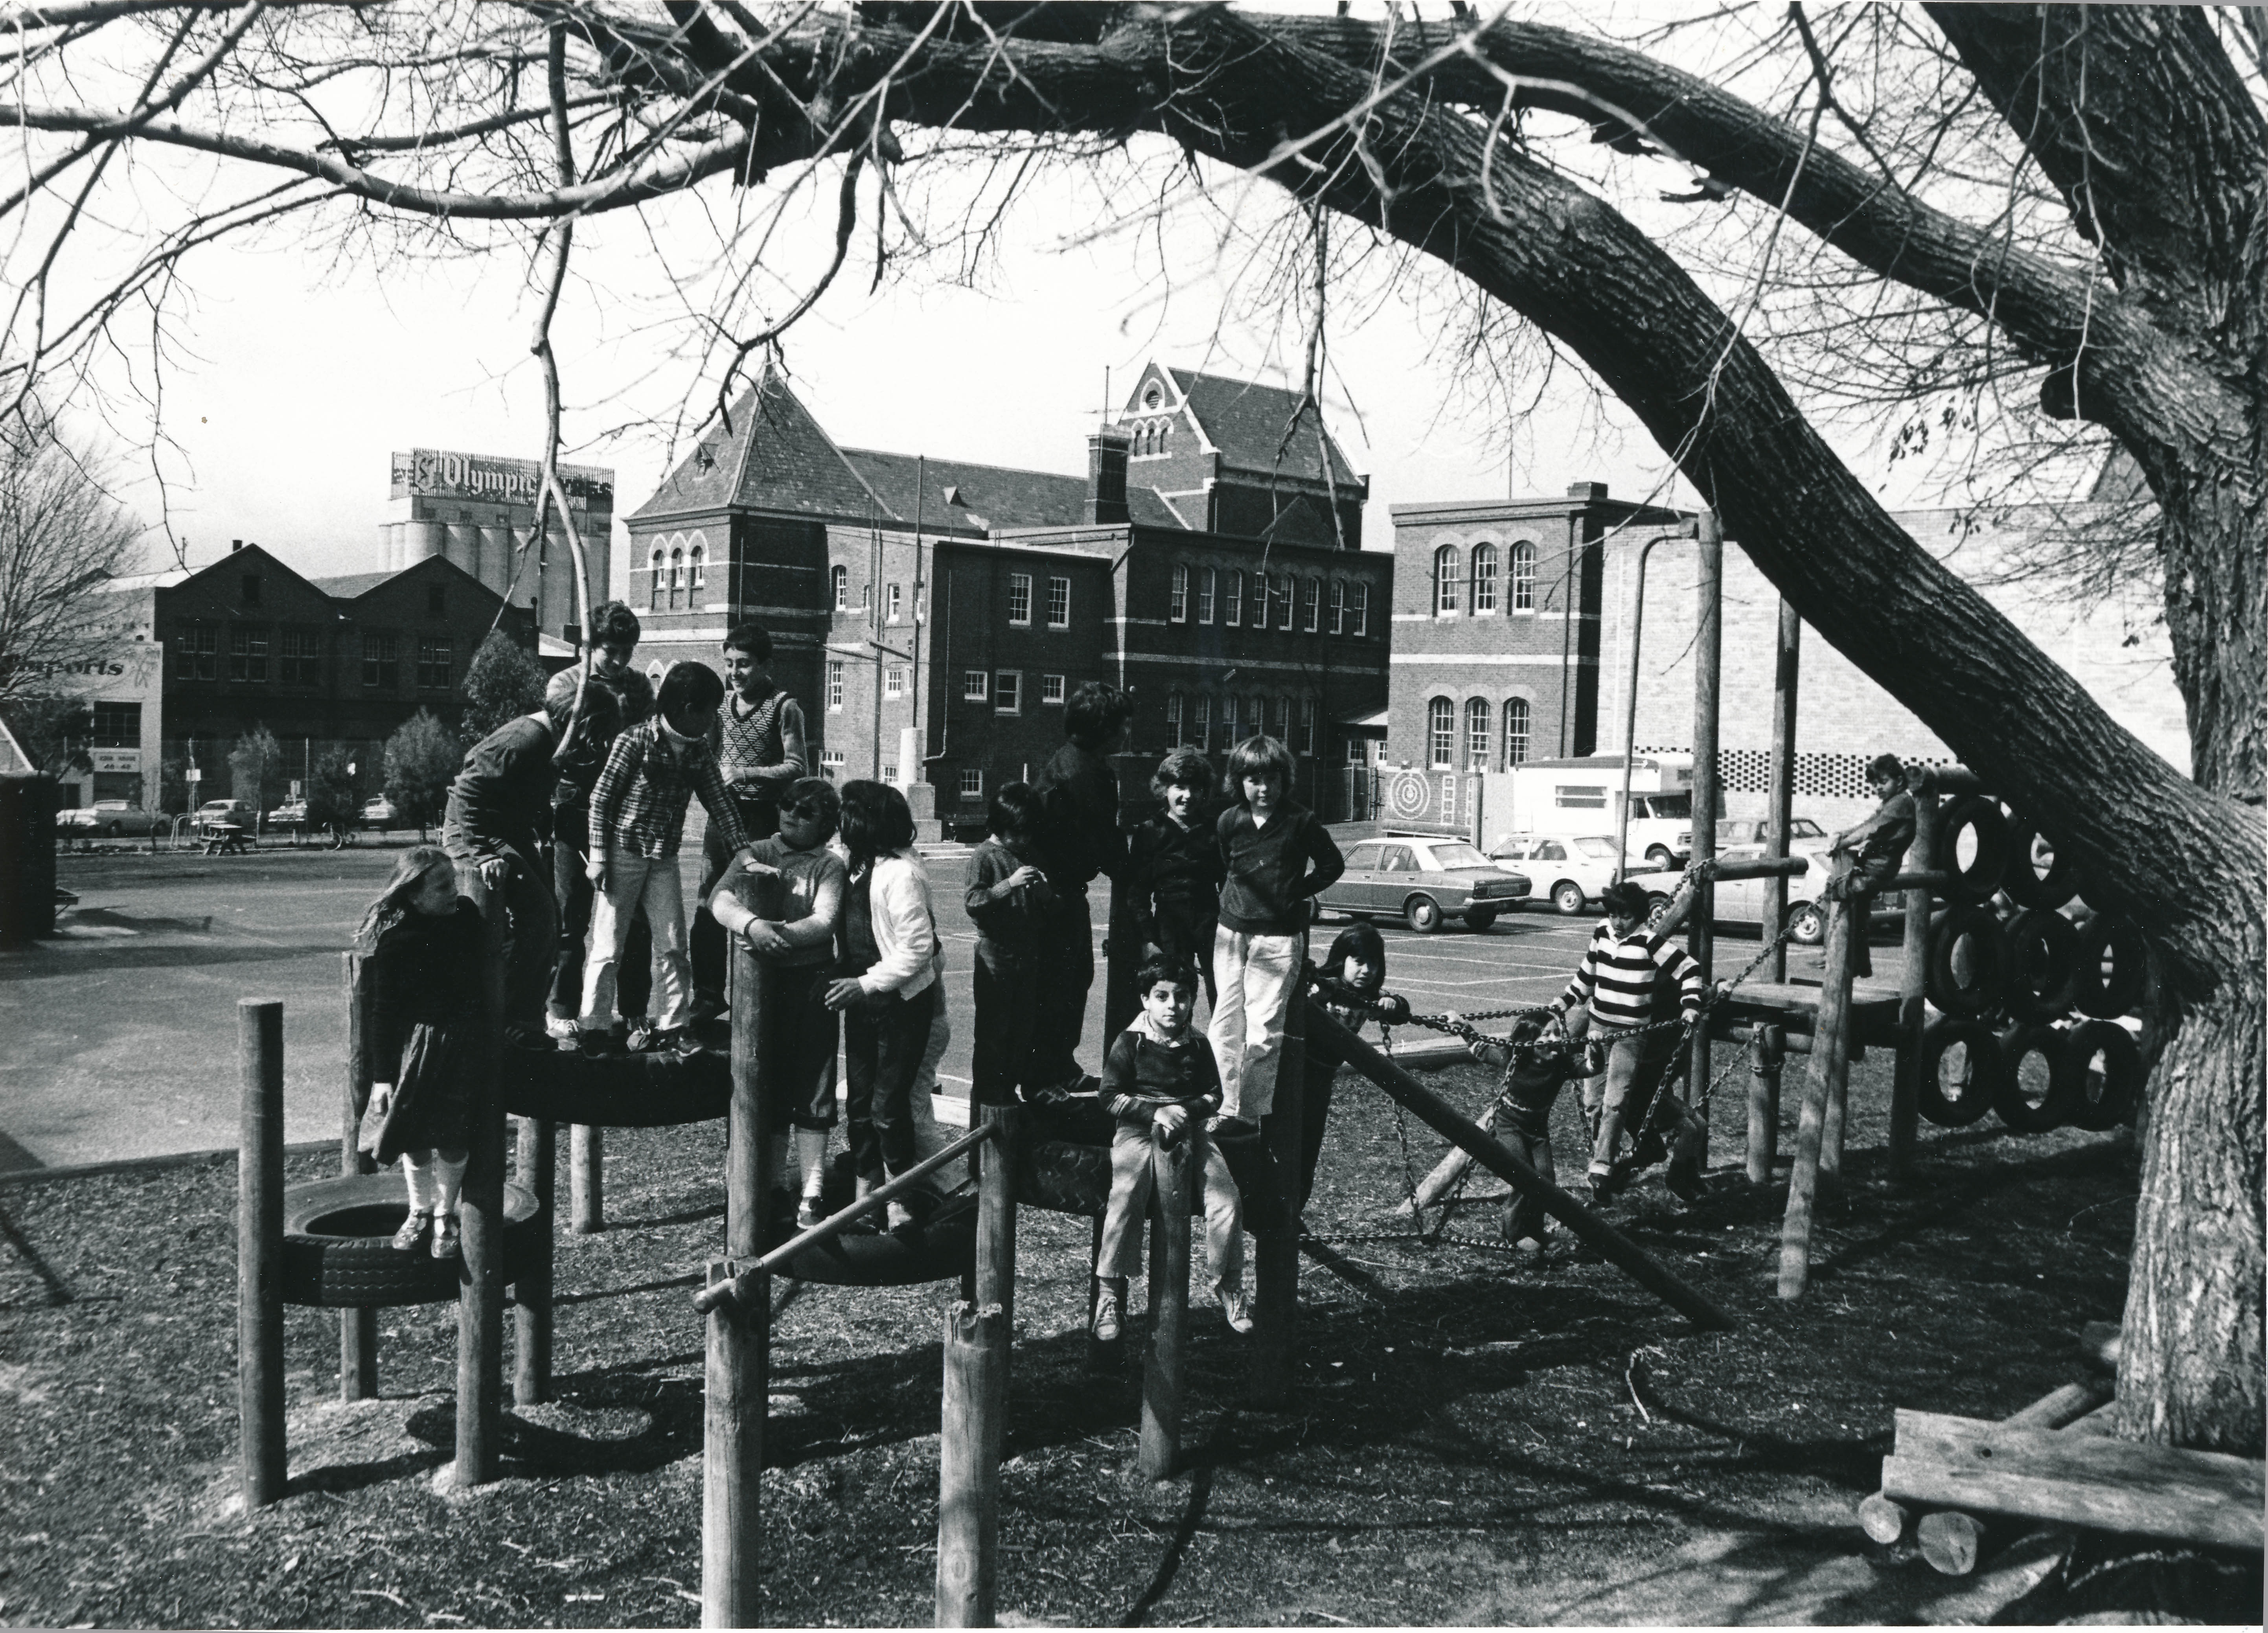 Children at play, Cambridge Street Primary School, Collingwood, c1980s. Photographer unknown. Yarra Libraries, CL PIC 190.